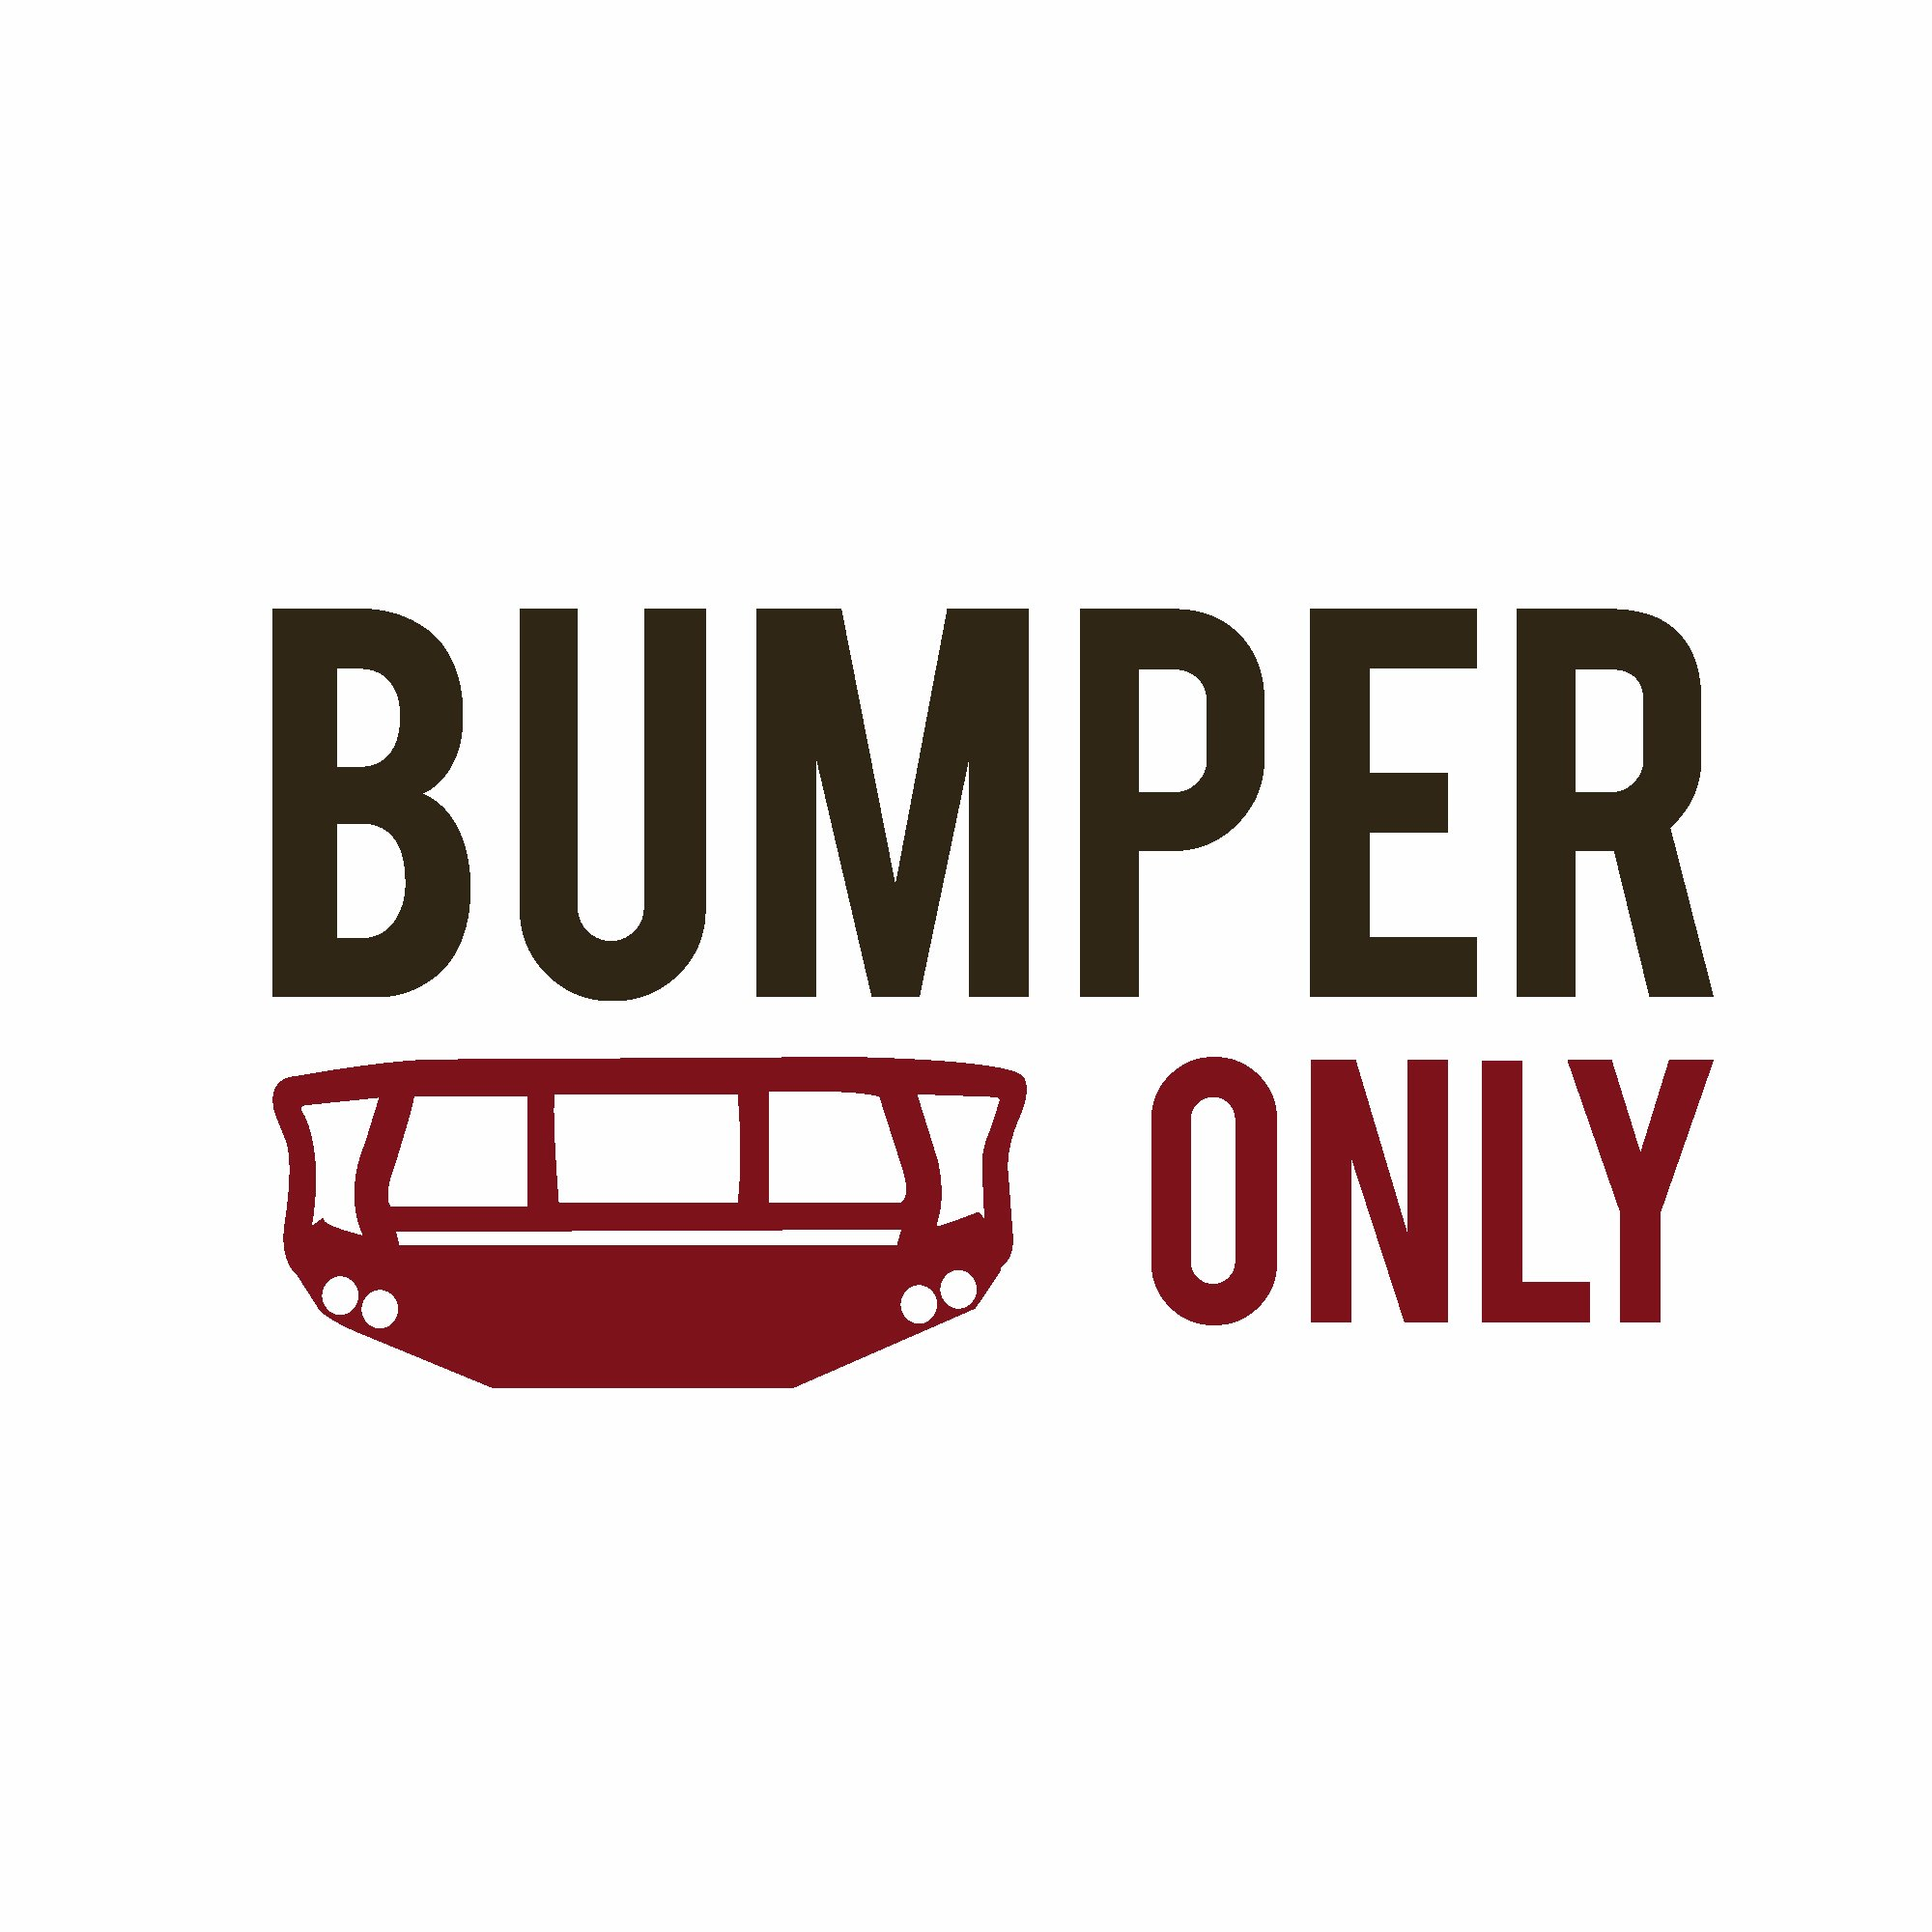 BumperOnly